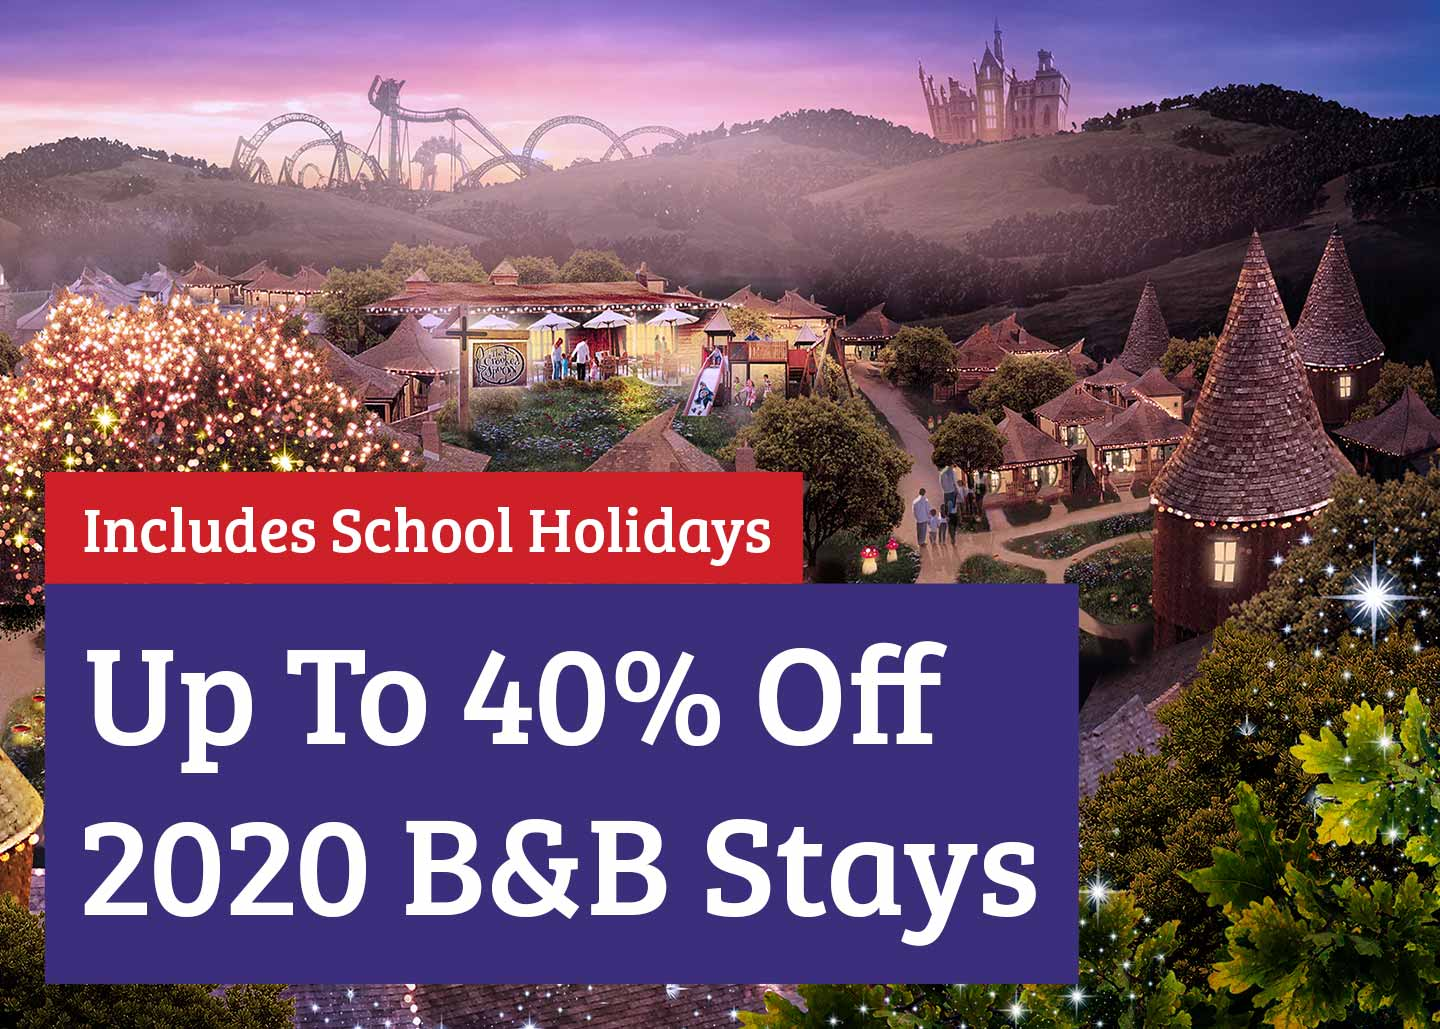 Save up to 40% on your 2020 accommodation